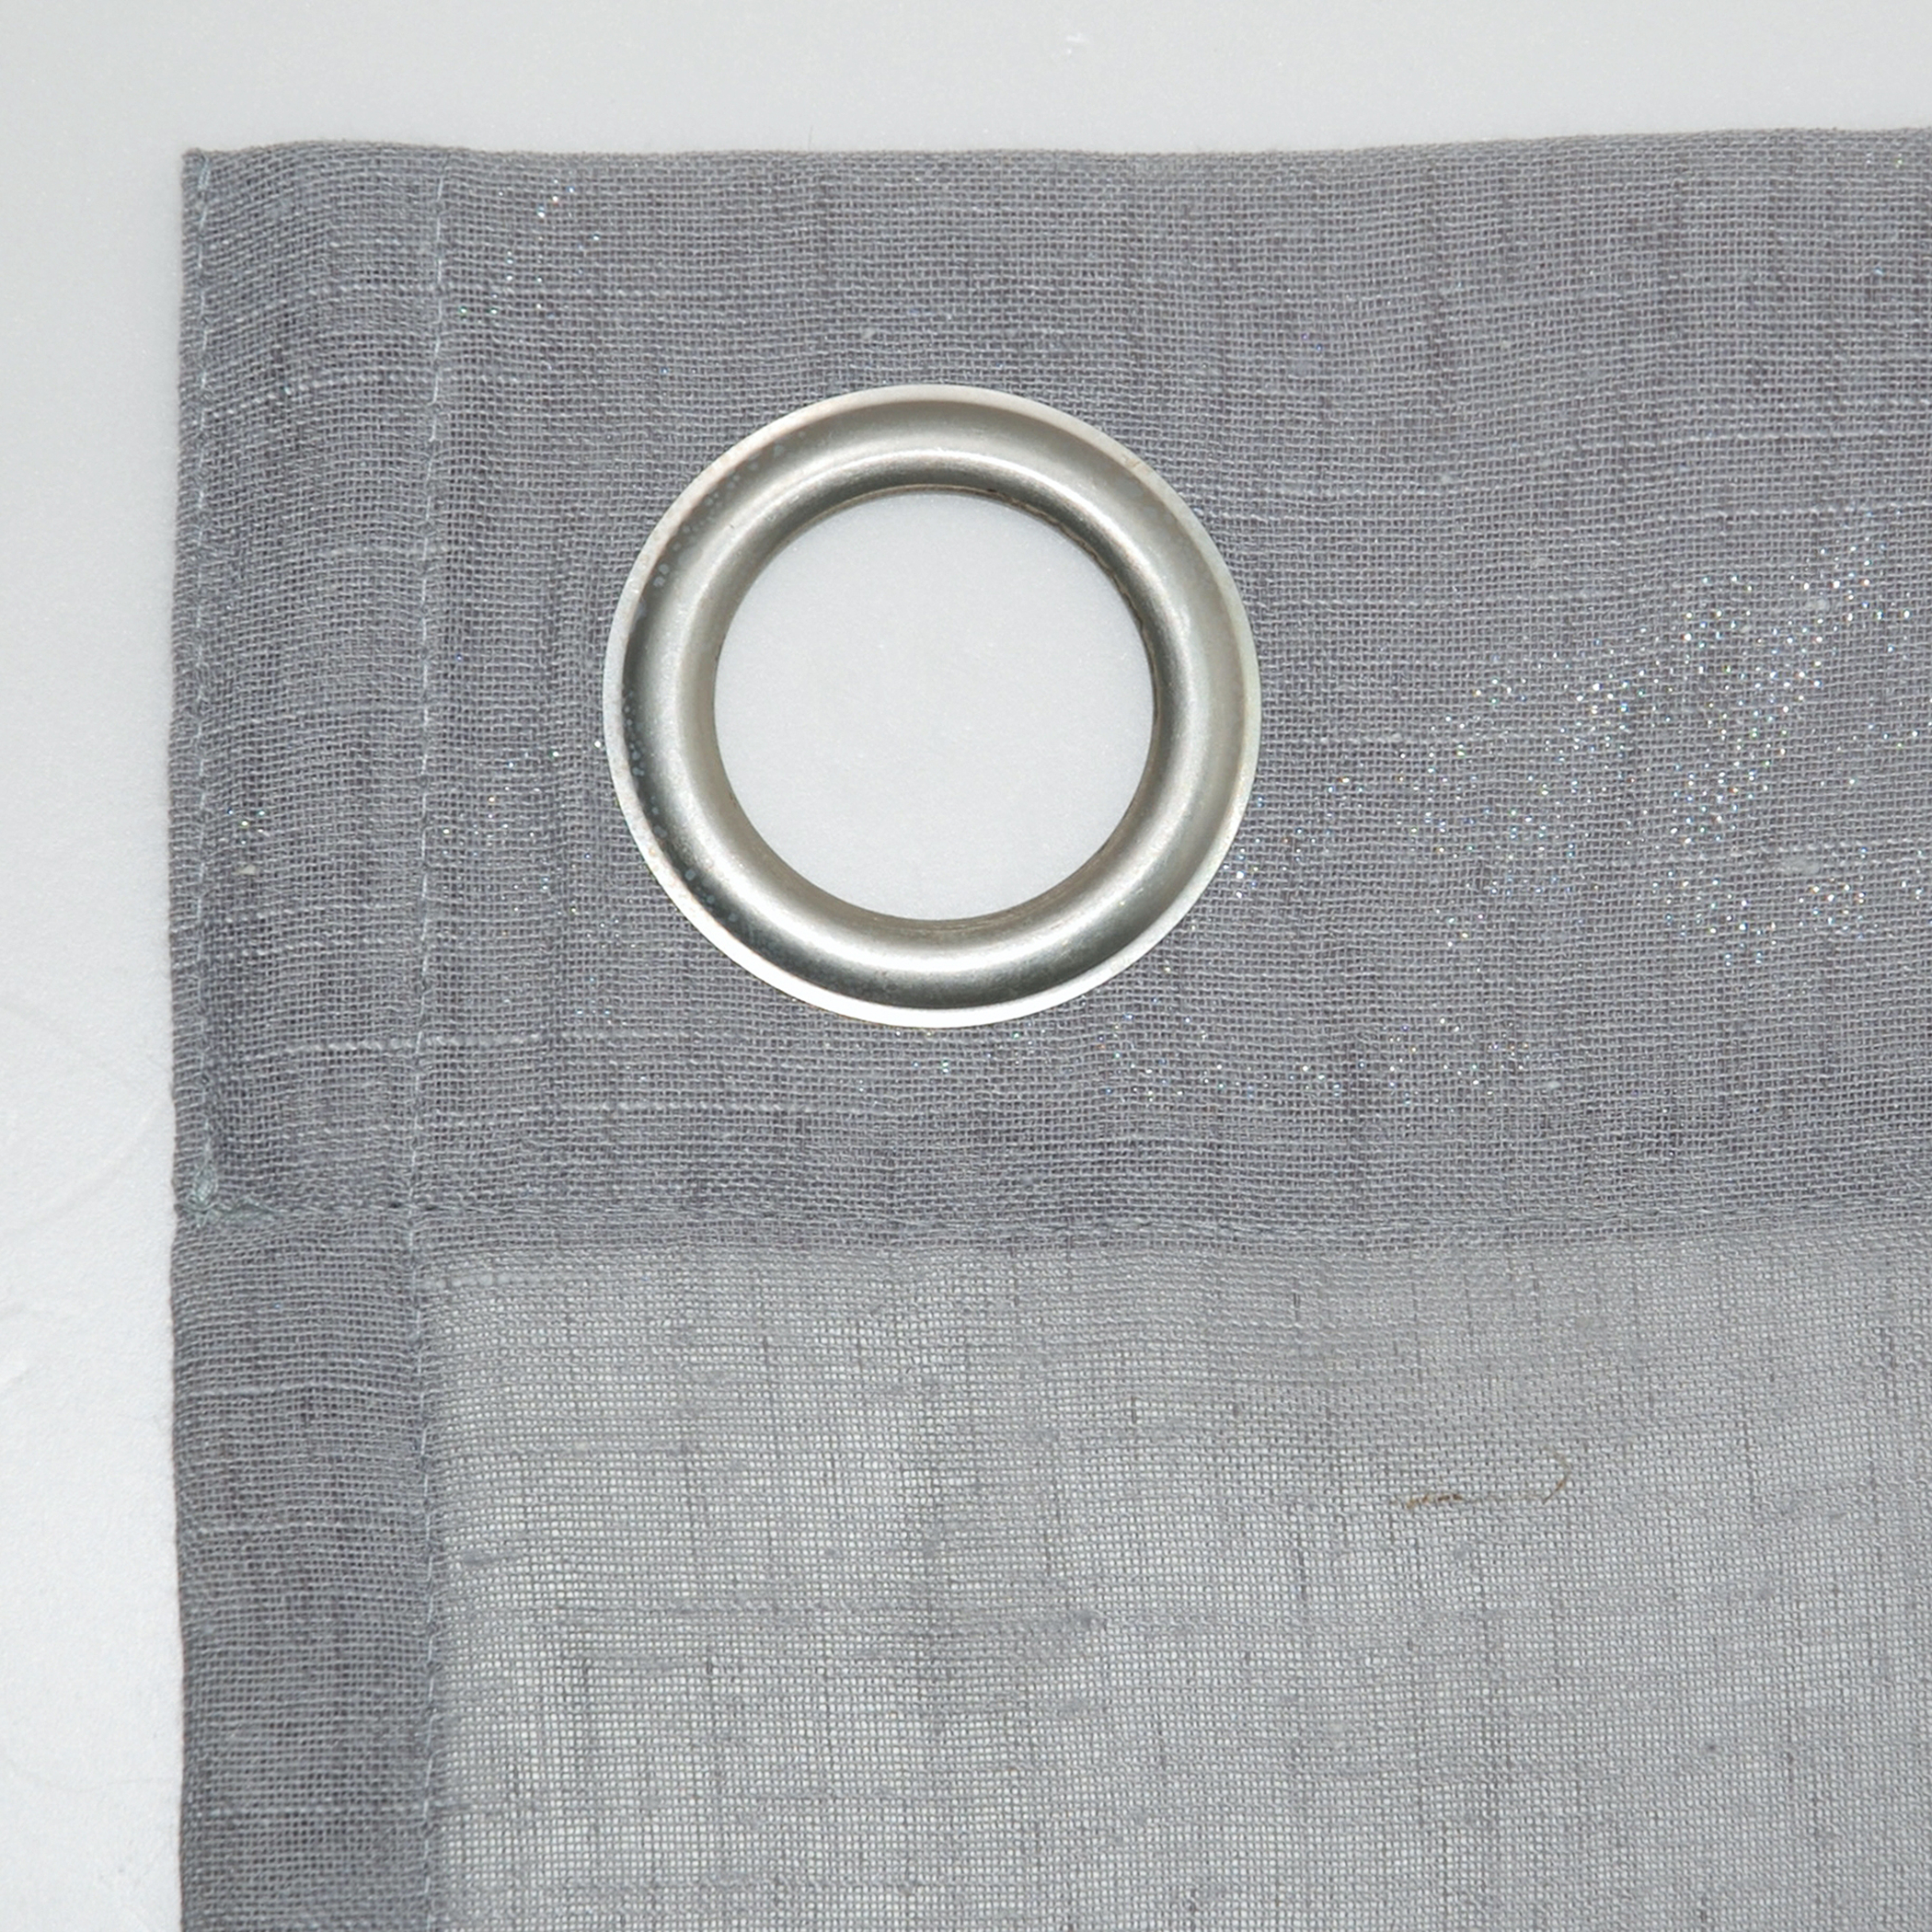 Archaeo Slub Textured Linen Blend Grommet Top Curtains In Most Up To Date Archaeo Slub Textured Linen Blend Grommet Top Curtain (View 8 of 20)